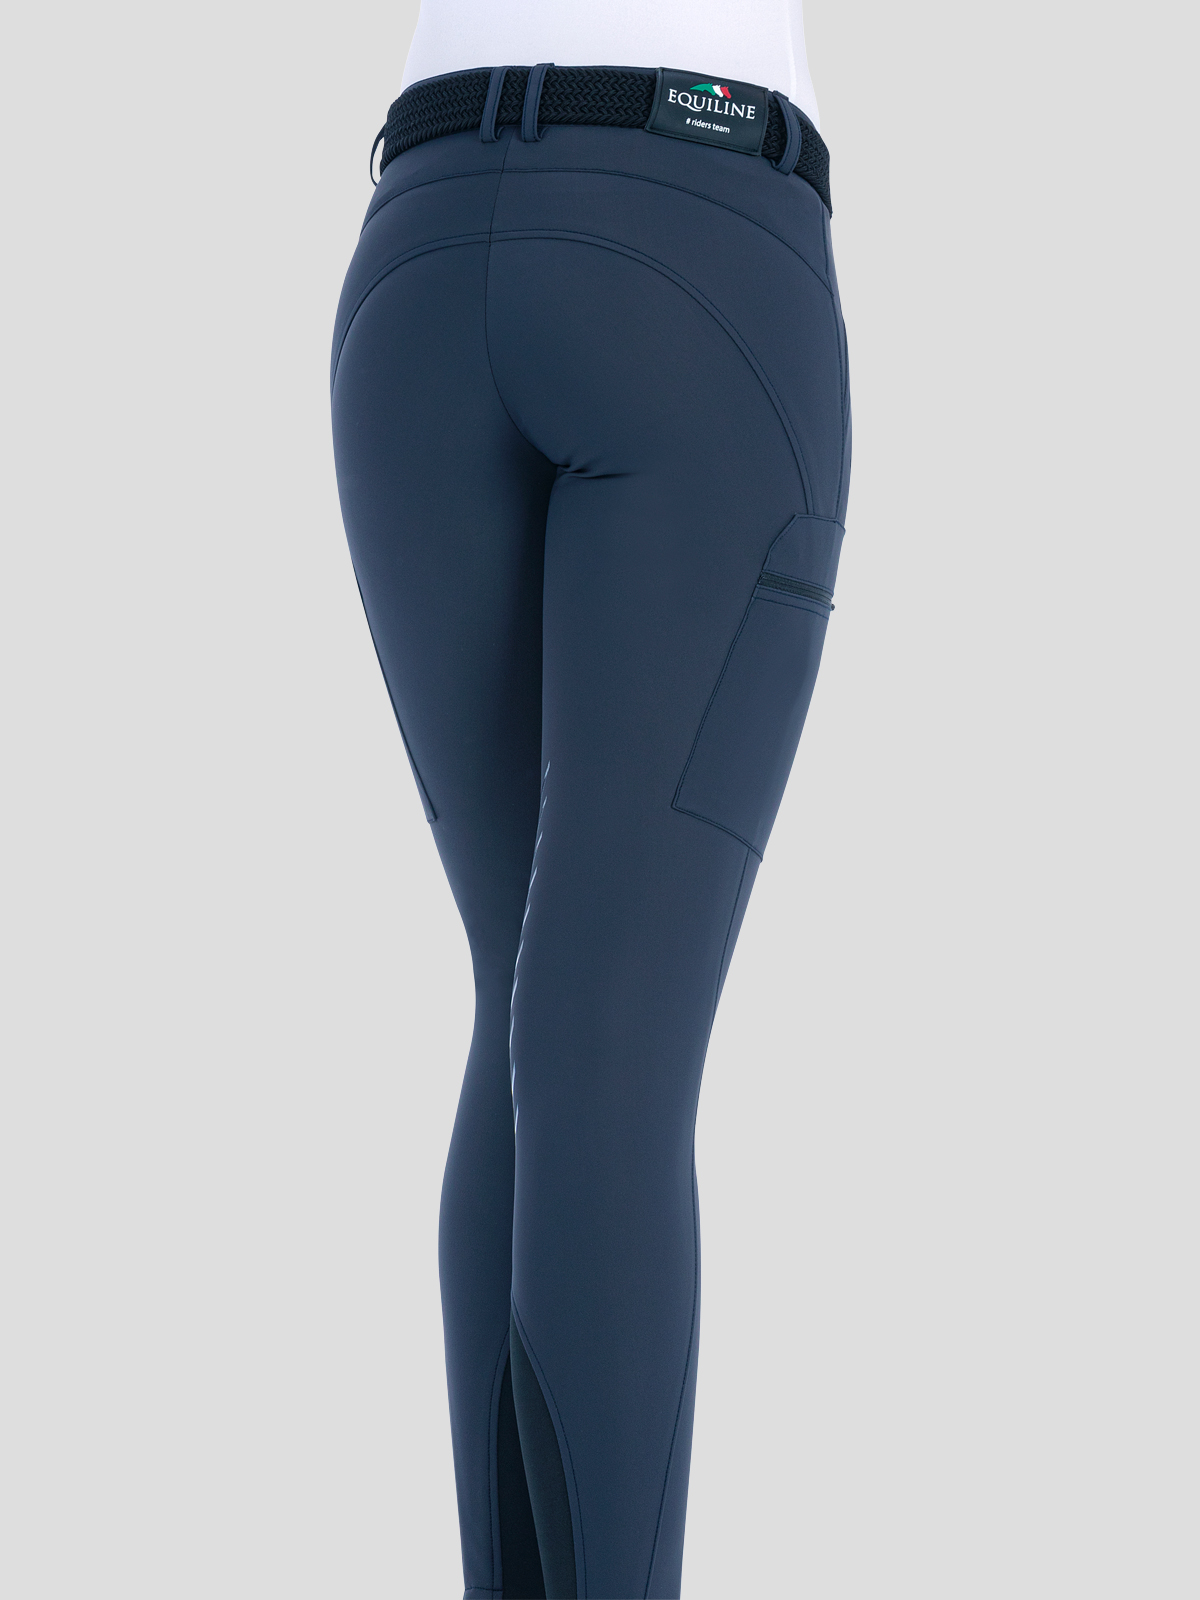 ChantalC Women's Cargo Breeches with Knee Grip in B-Move 2